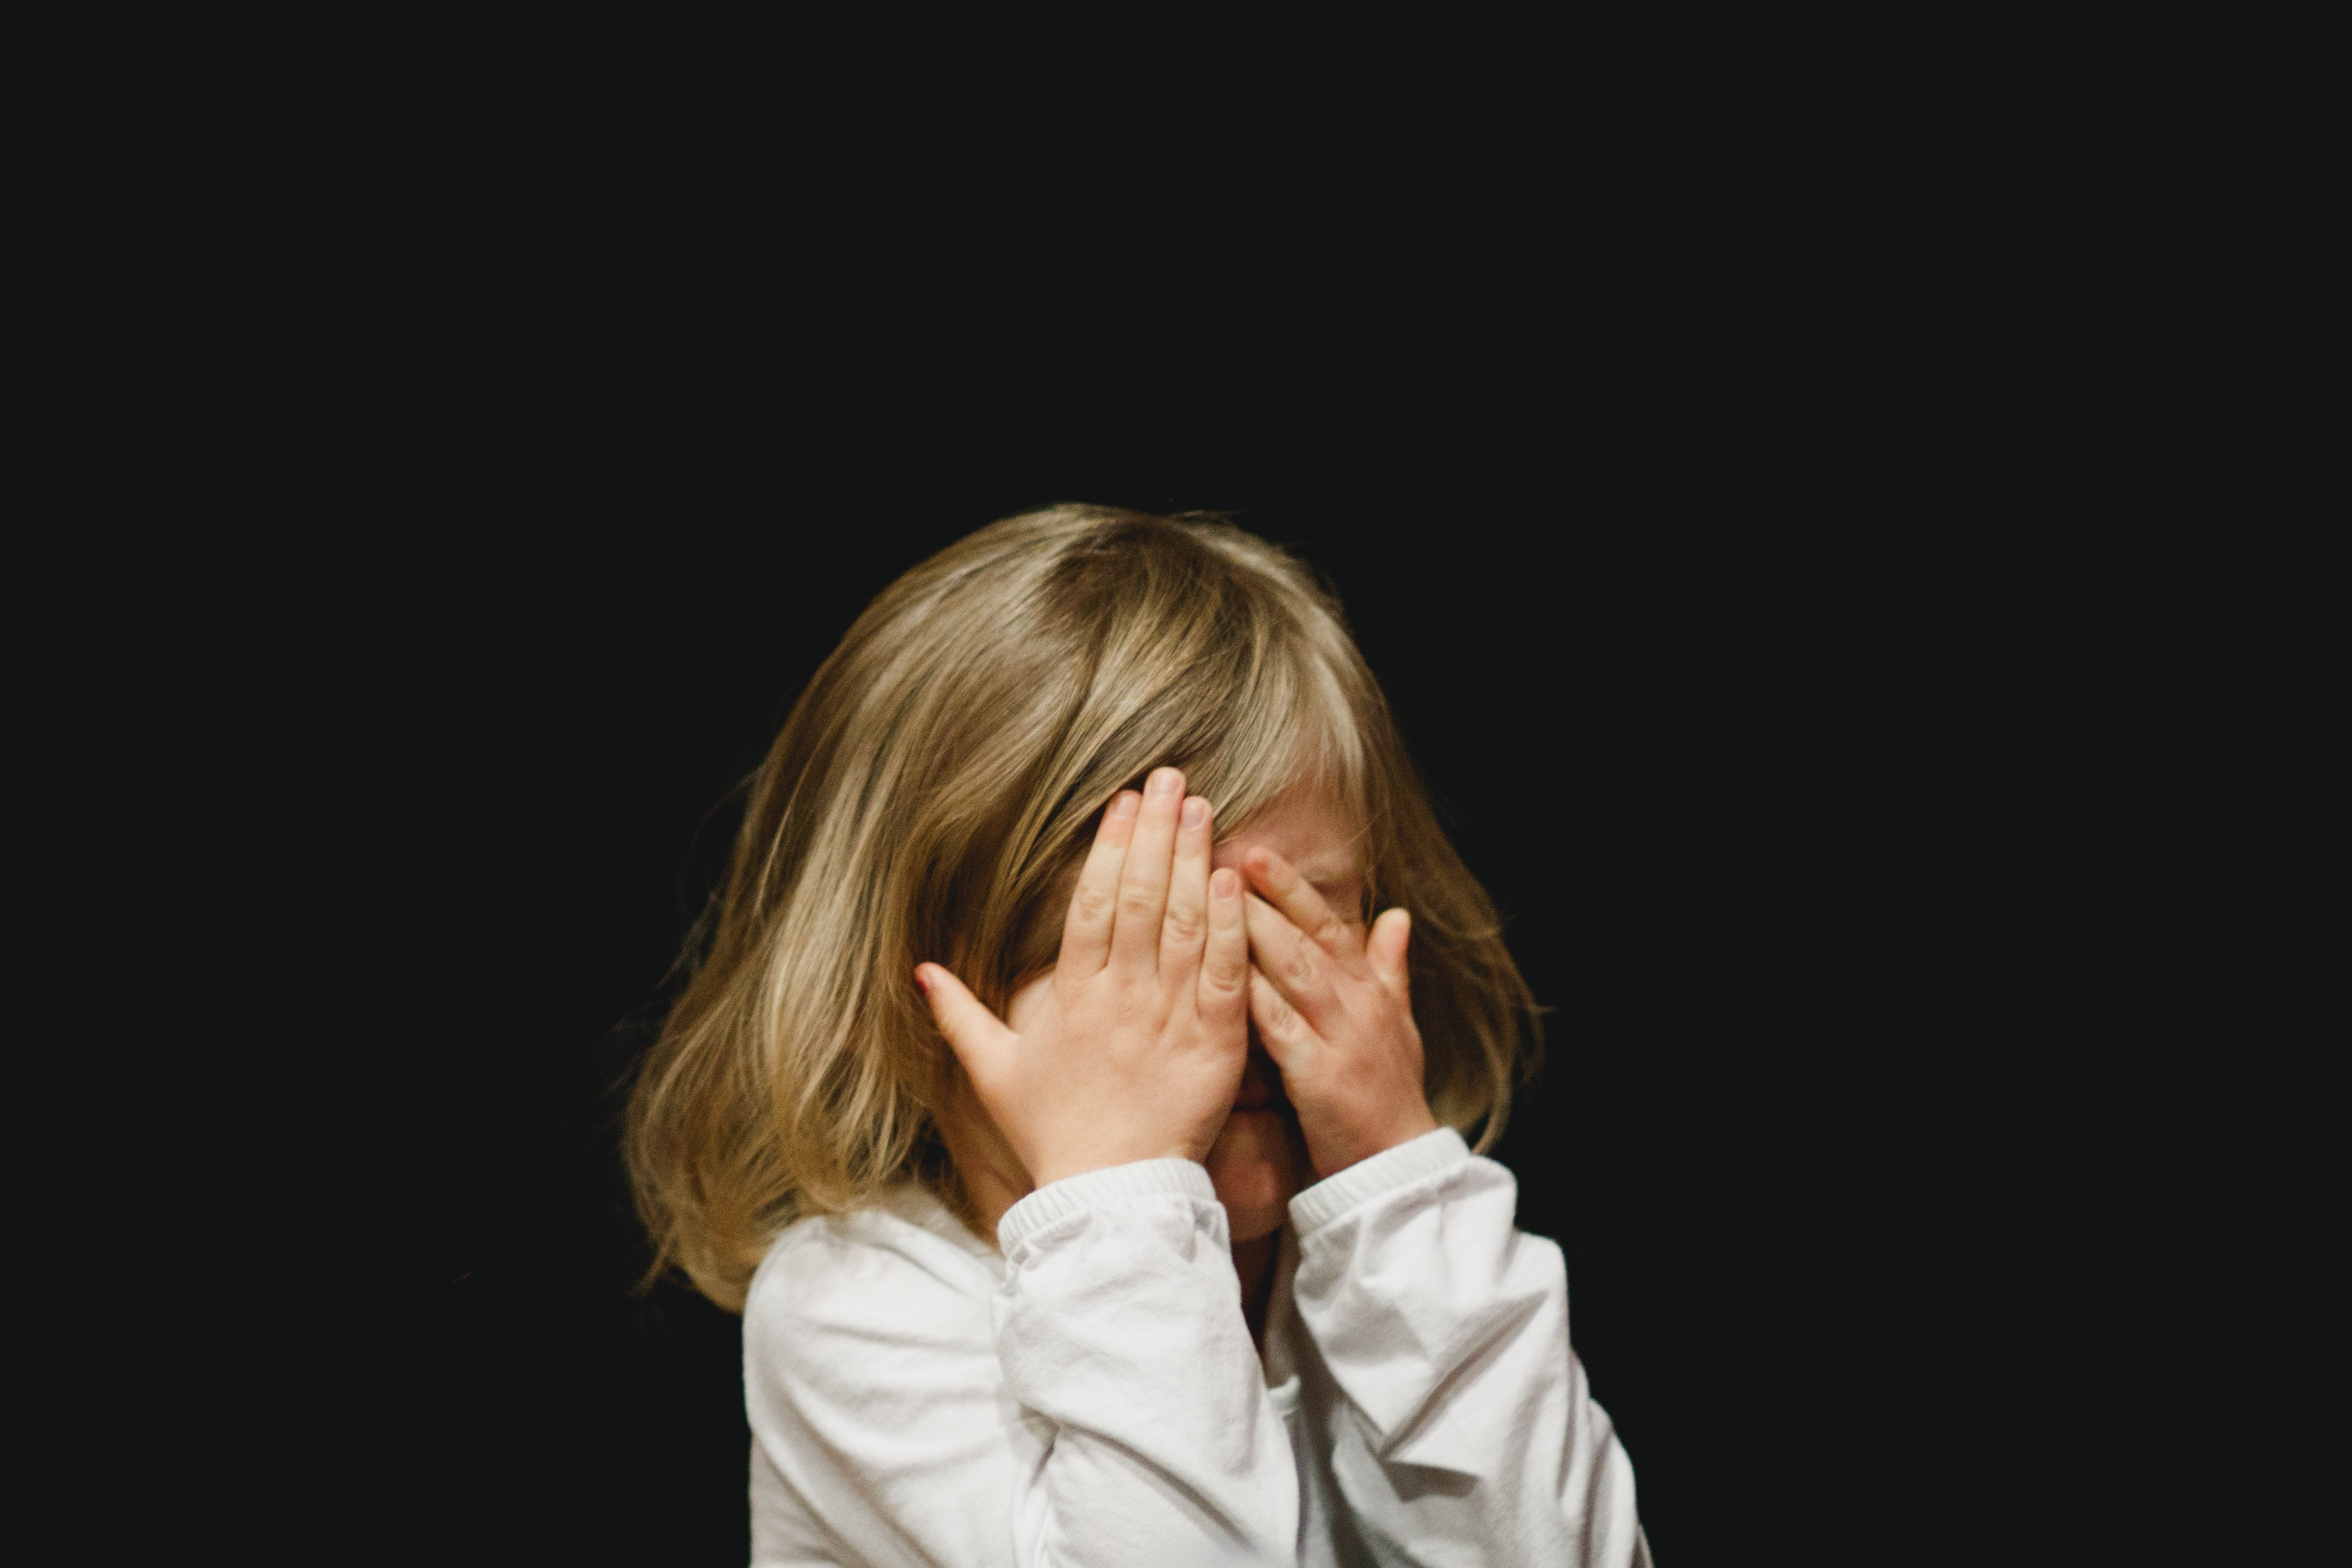 Young girl with her hands over her eyes